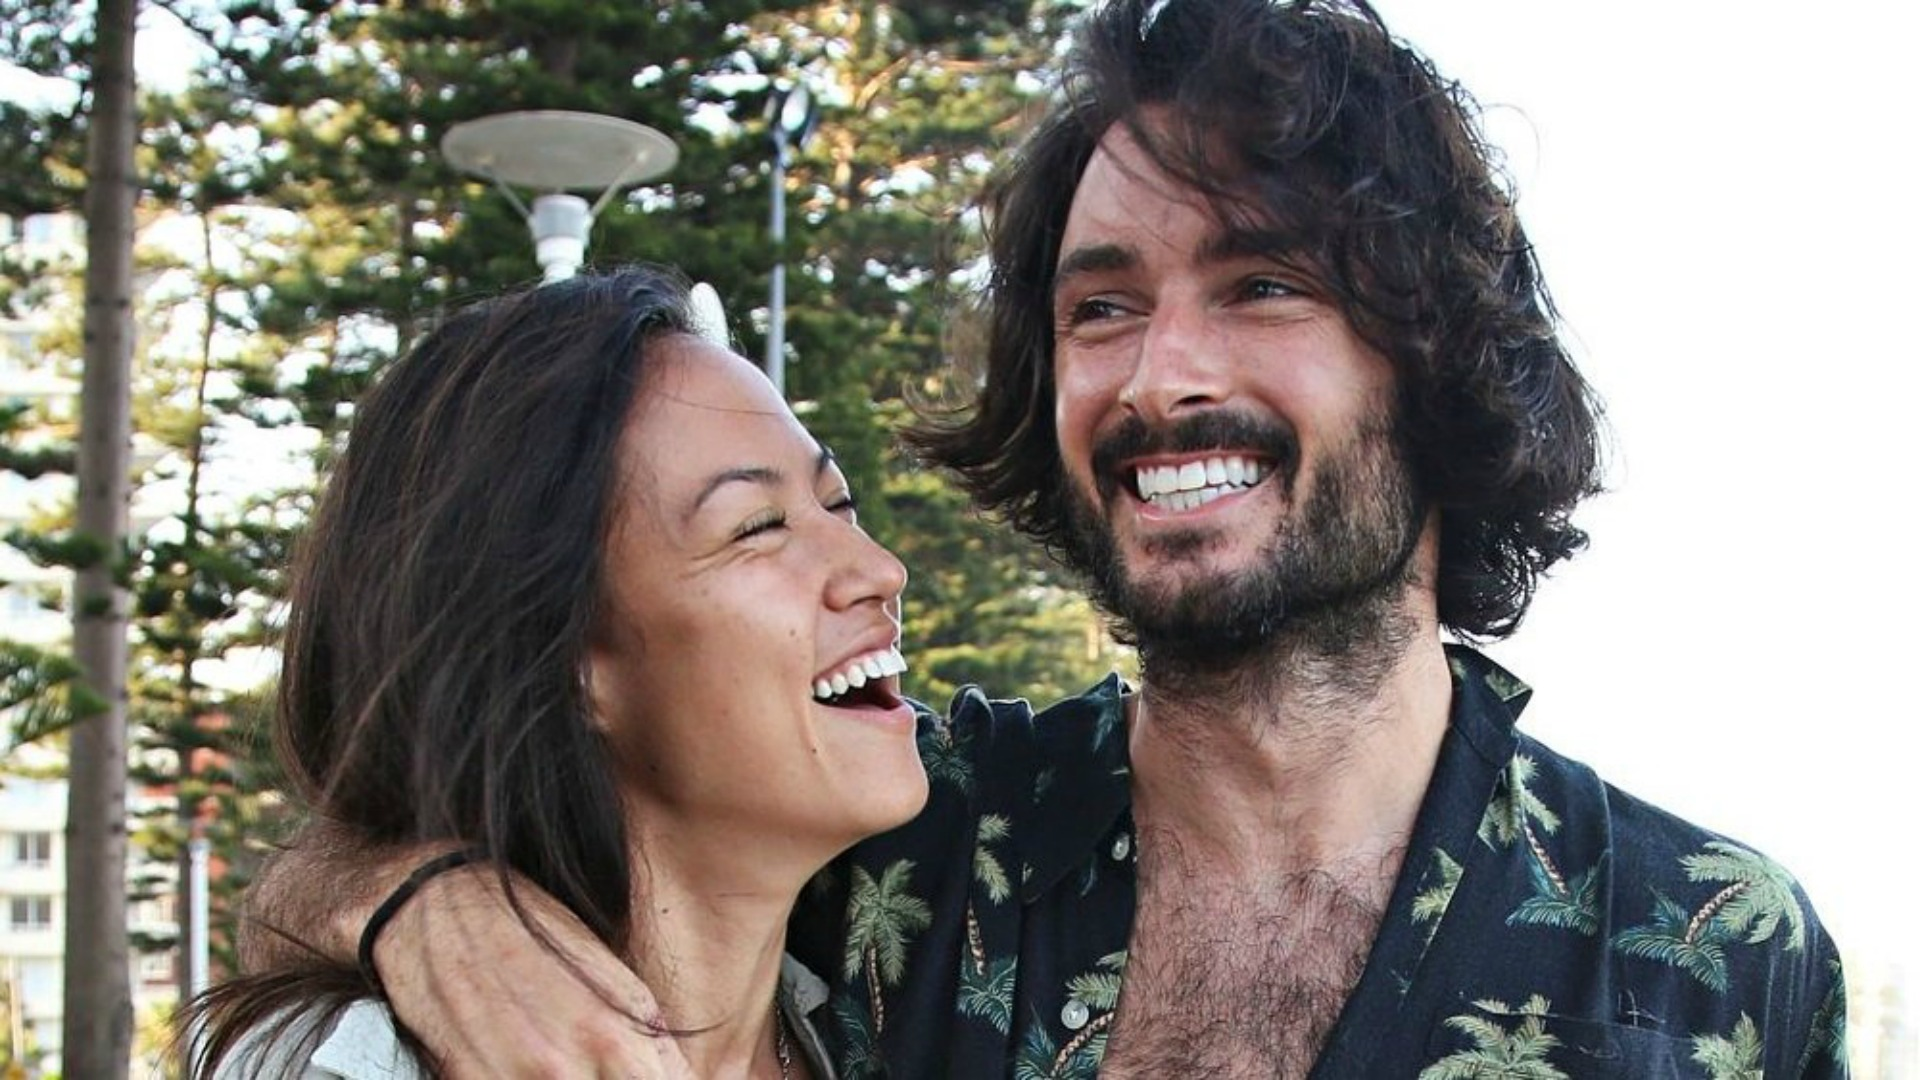 Reality TV star and girlfriend were 'attacked by cannibals' on